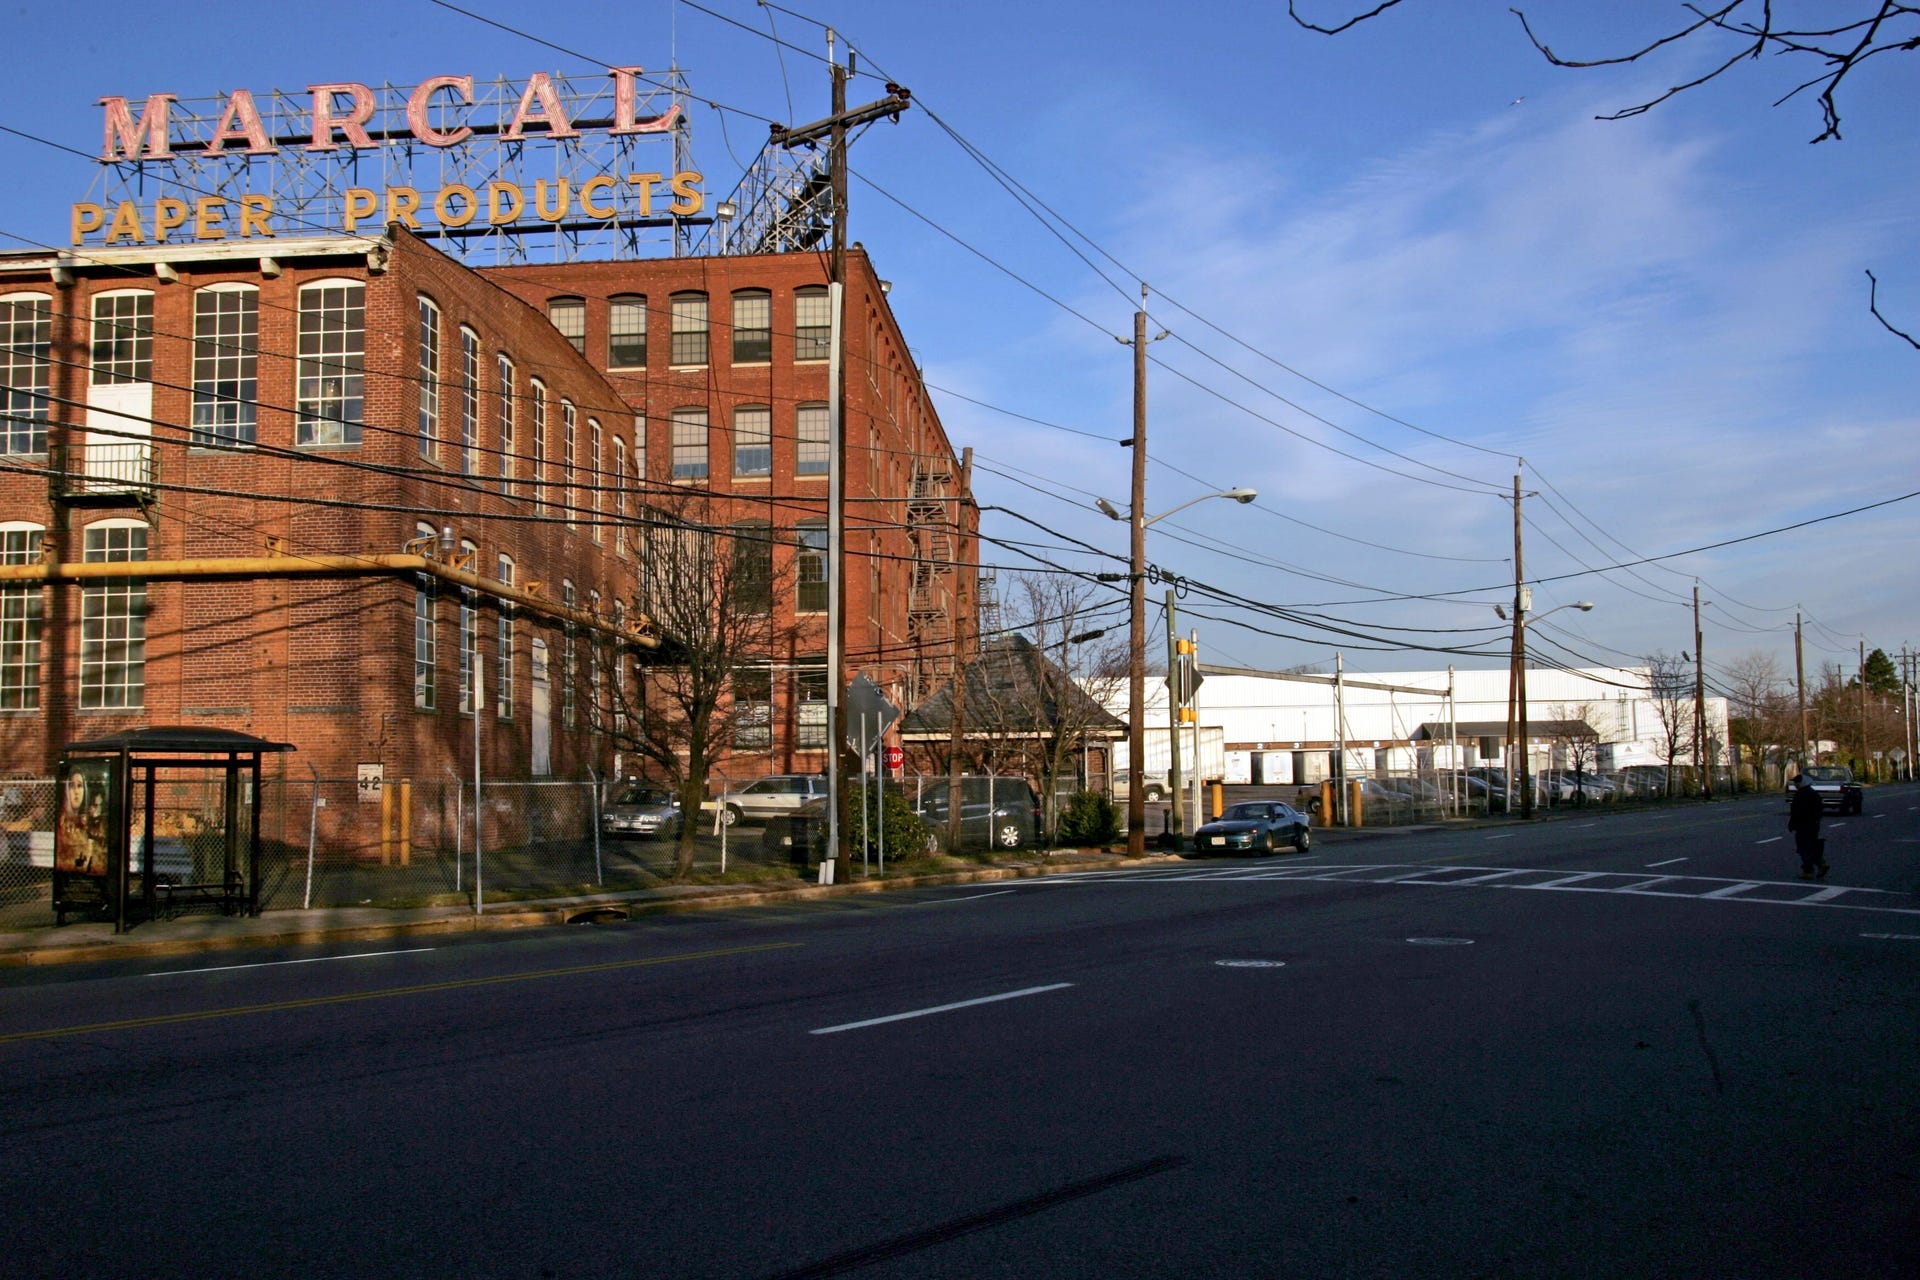 Iconic New Jersey restaurants, landmarks and businesses